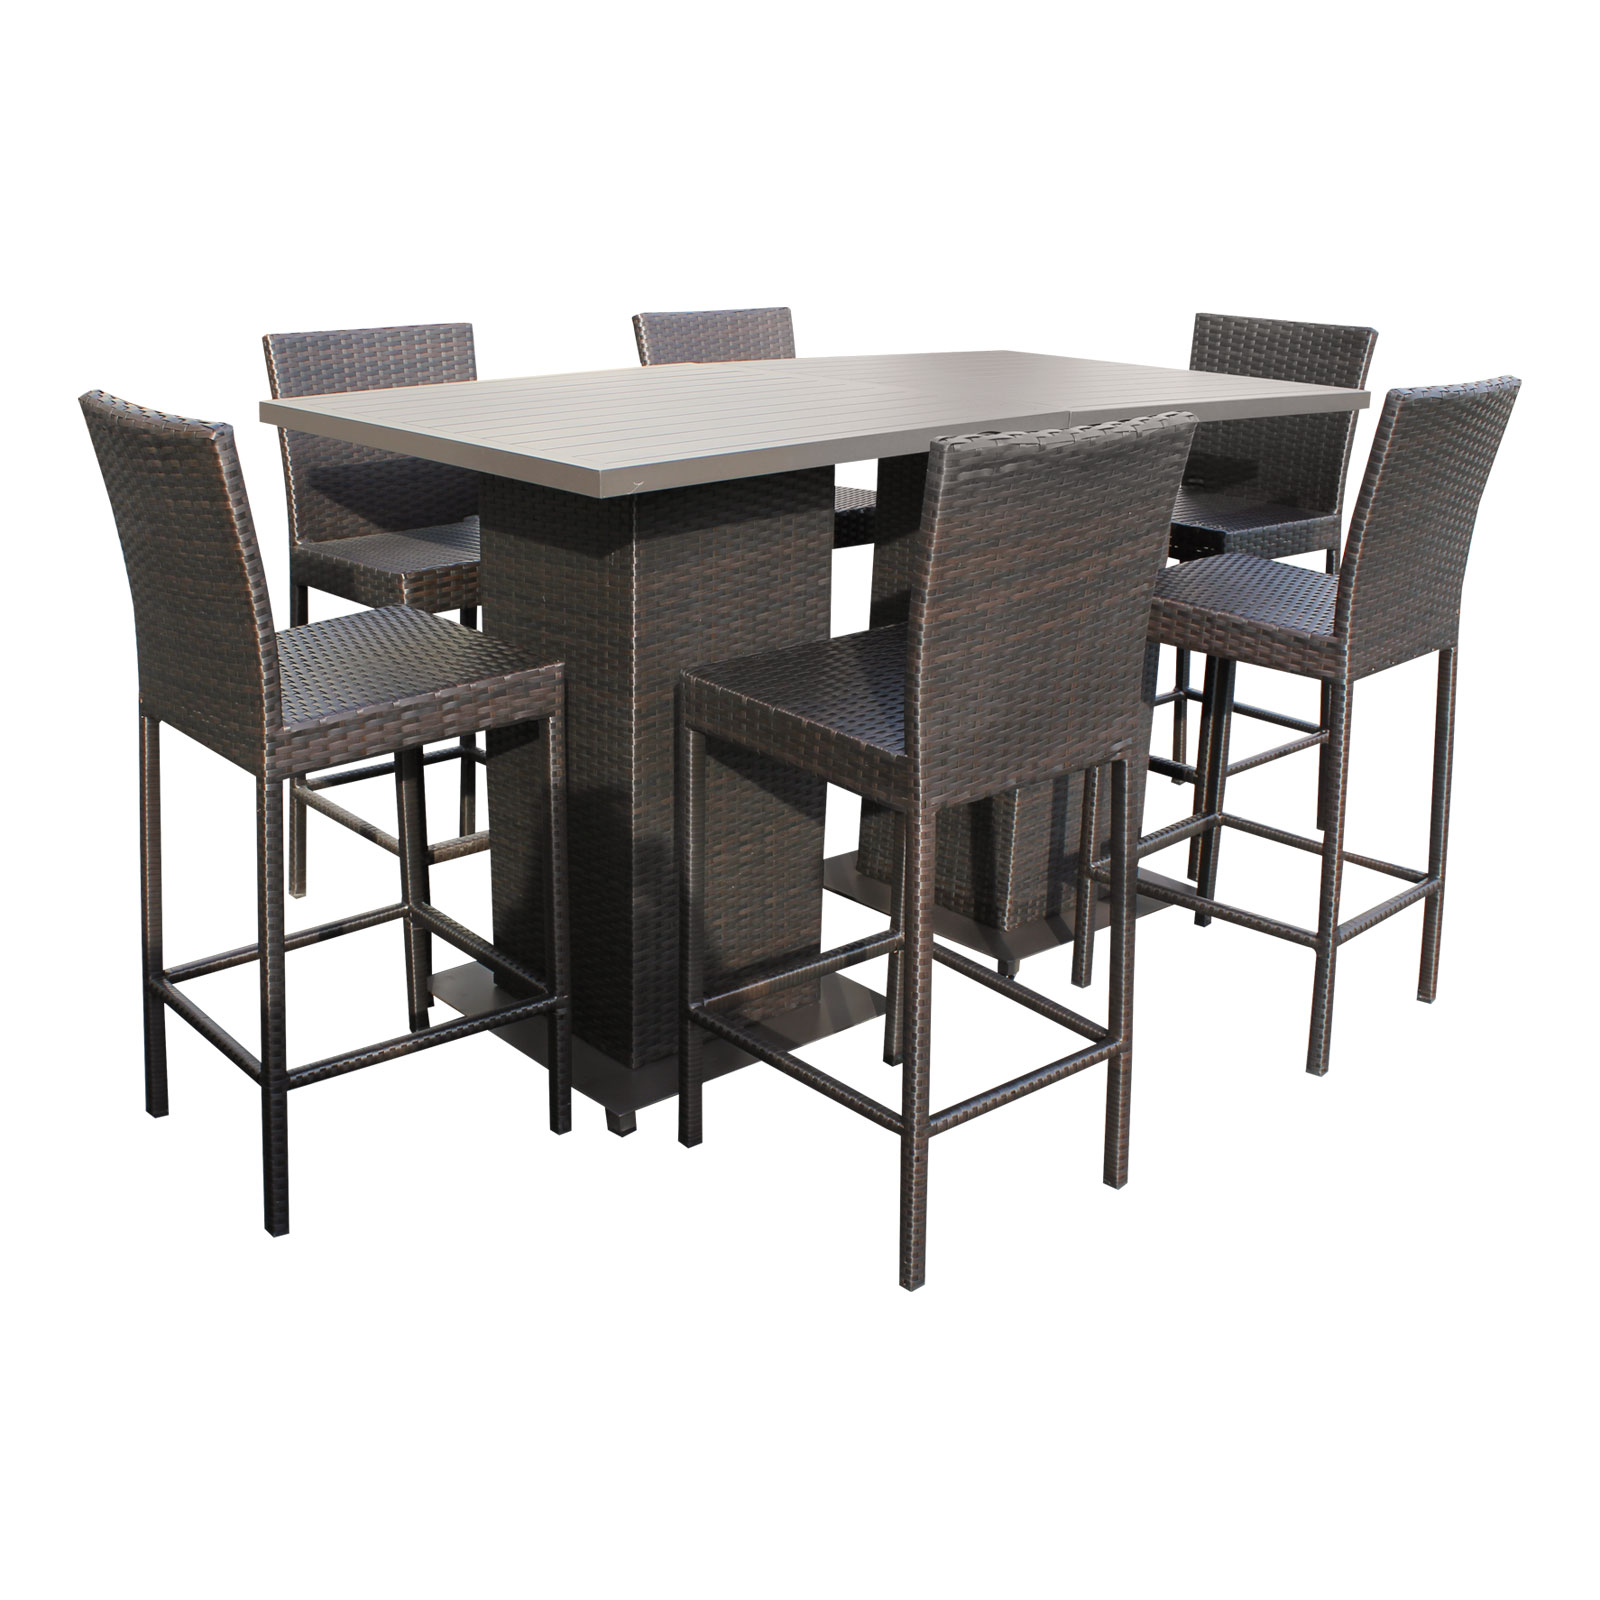 Table And Bar Stools Venus Pub Table Set With Barstools 5 Piece Outdoor Wicker Patio Furniture